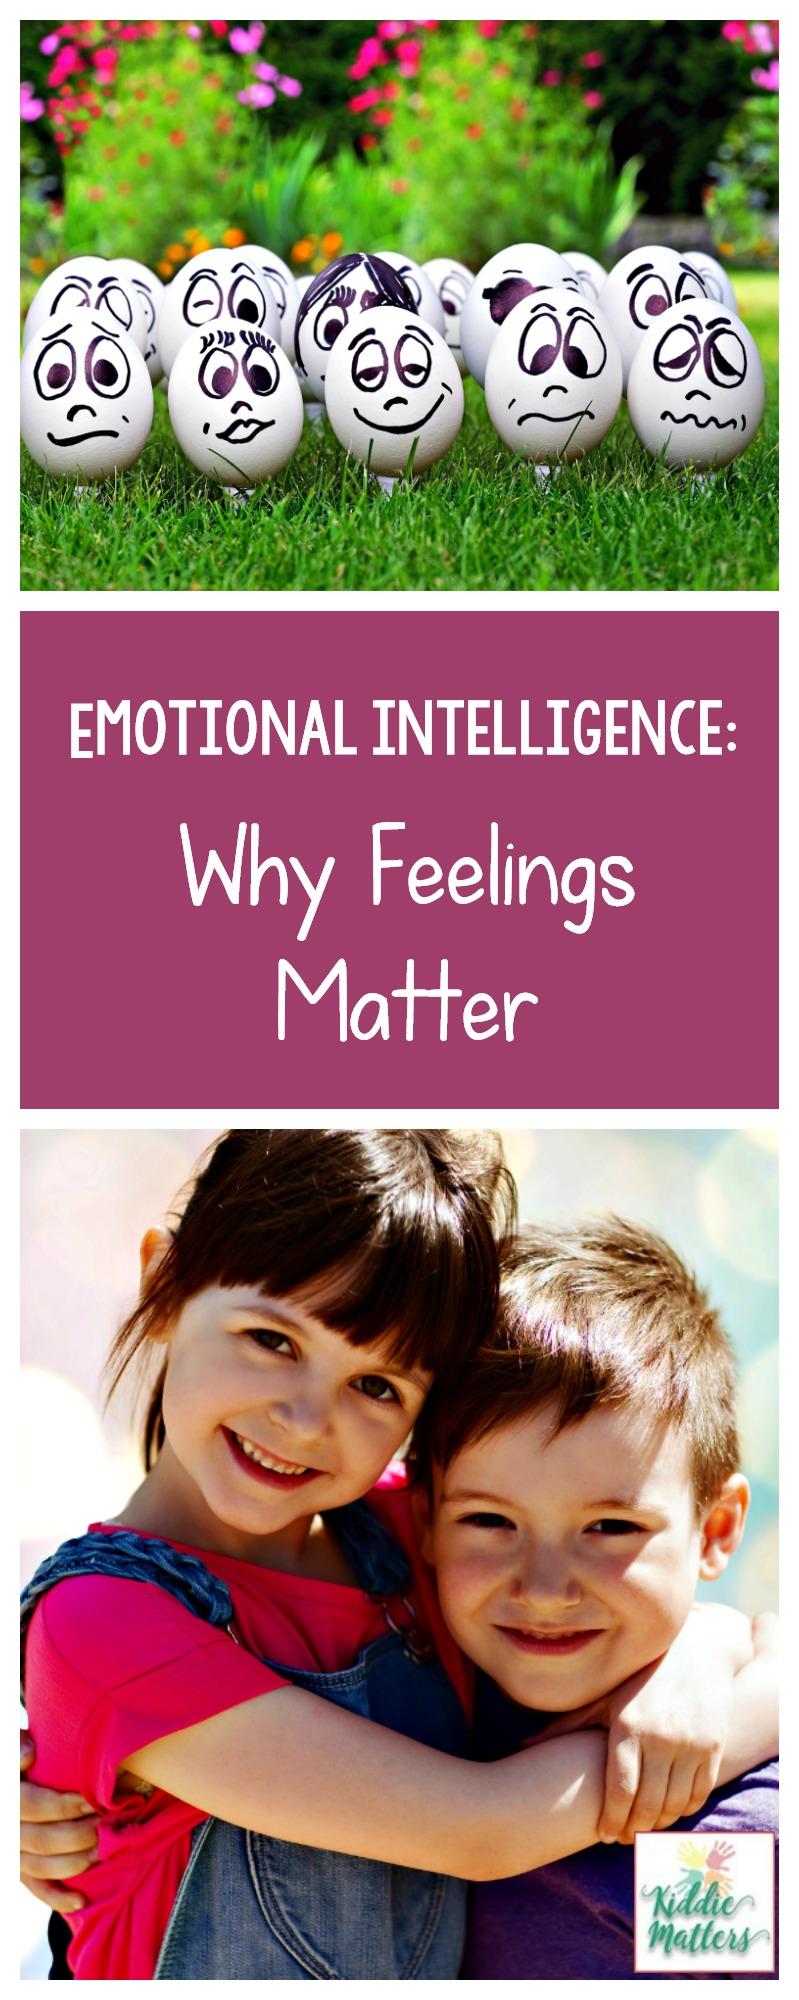 This article provides numerous resources which include feelings activities, identifying emotions printables, activities to help children learn how to manage big emotions, and so much more! #schoolcounseling #positiveparenting #feelings #socialemotionallearning #SEL